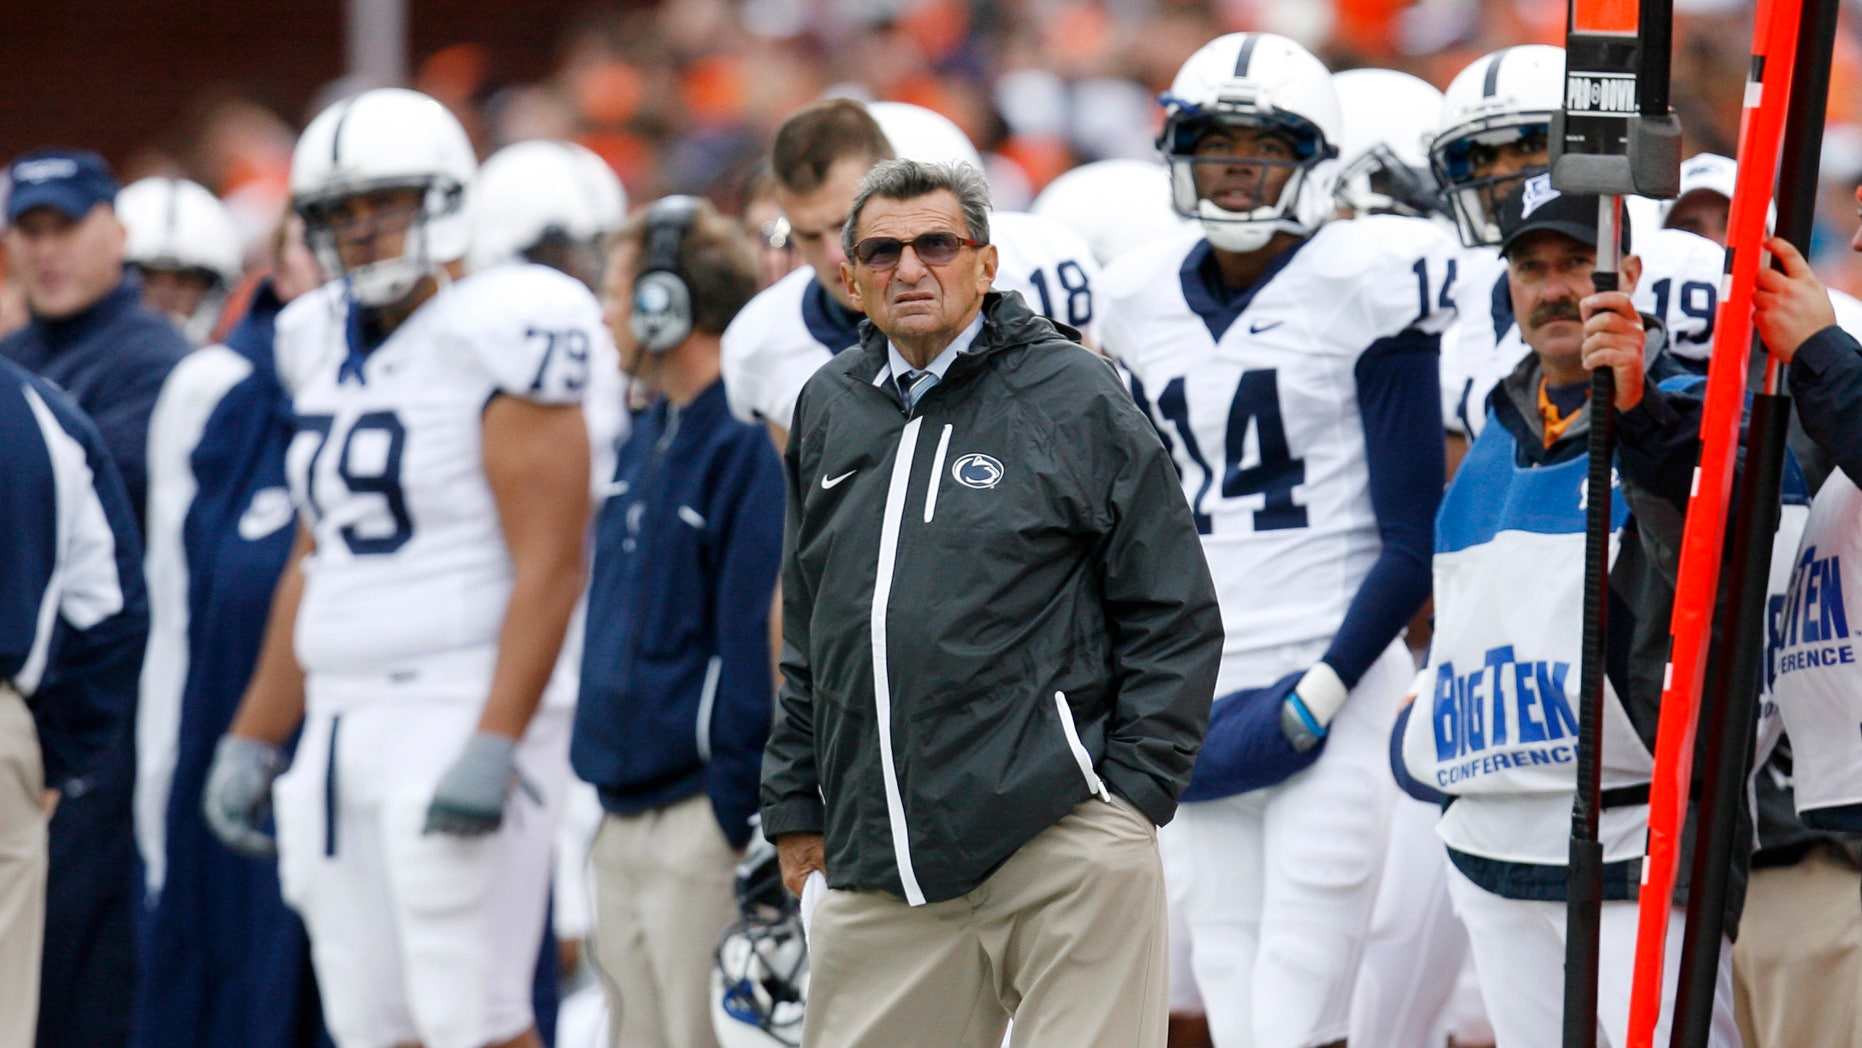 Joe Paterno during a Penn State game in 2009.